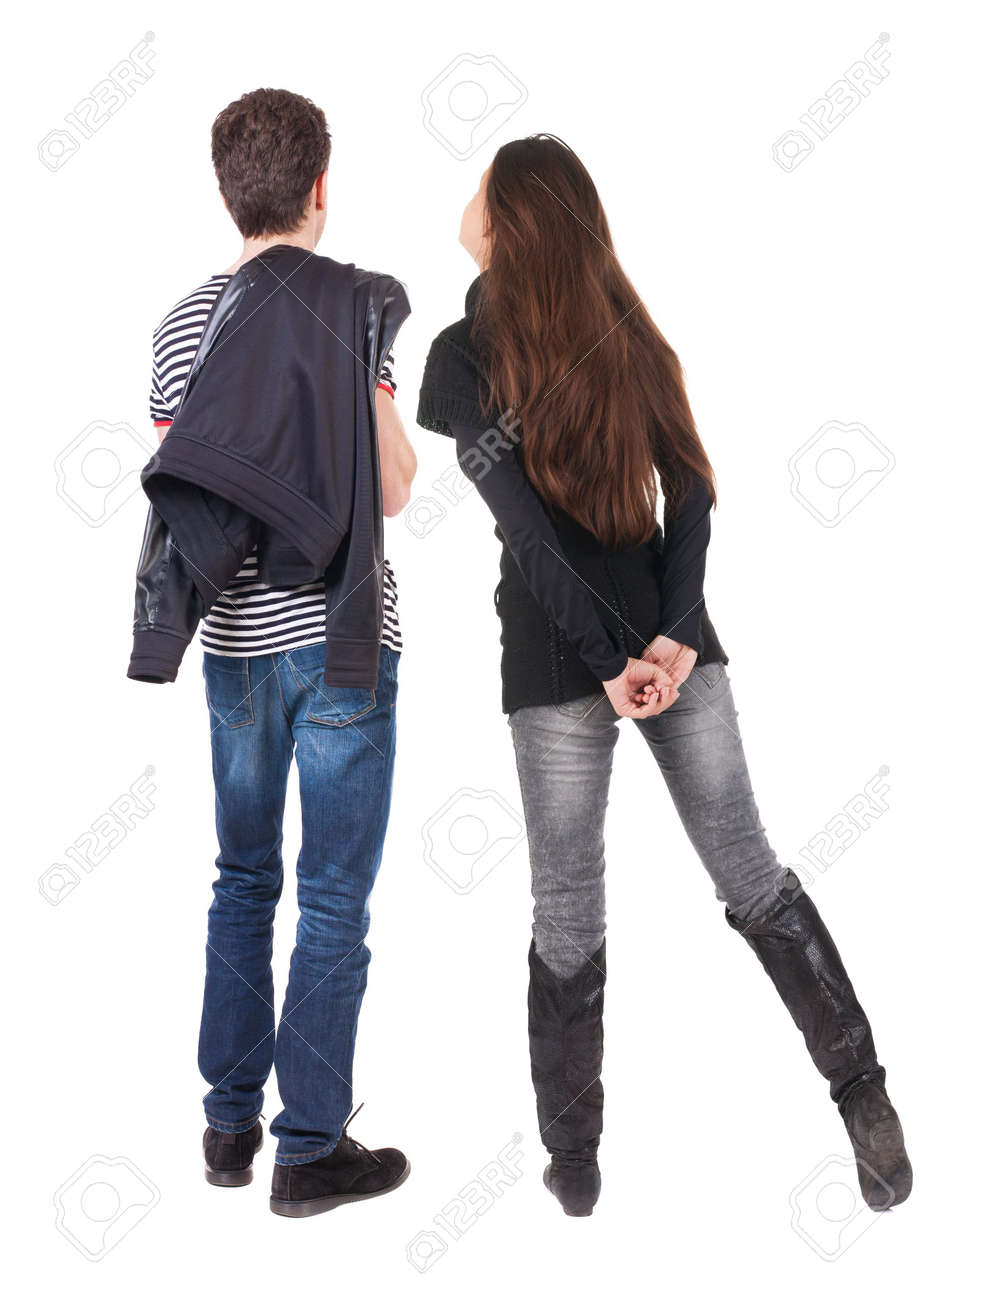 Back view of couple. beautiful friendly girl and guy together. Rear view people collection. backside view of person. Isolated over white background. - 135227506